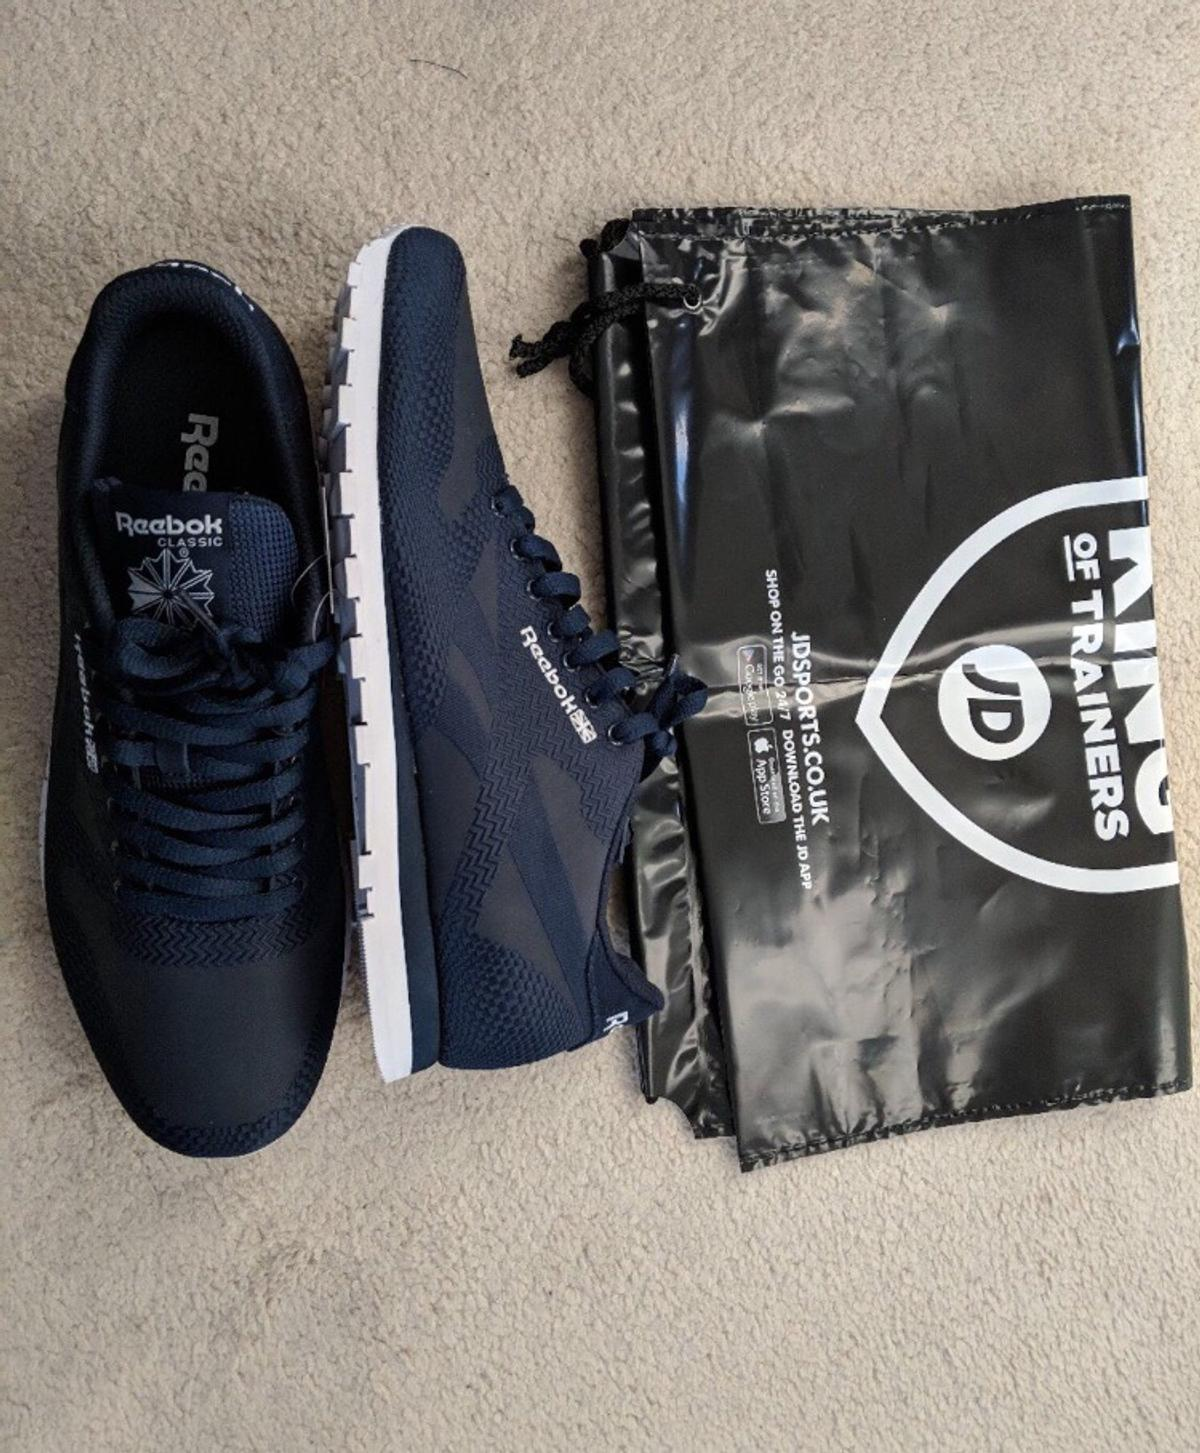 Reebok Classic Navy Blue (mens) in TW14 Hounslow for £25.00